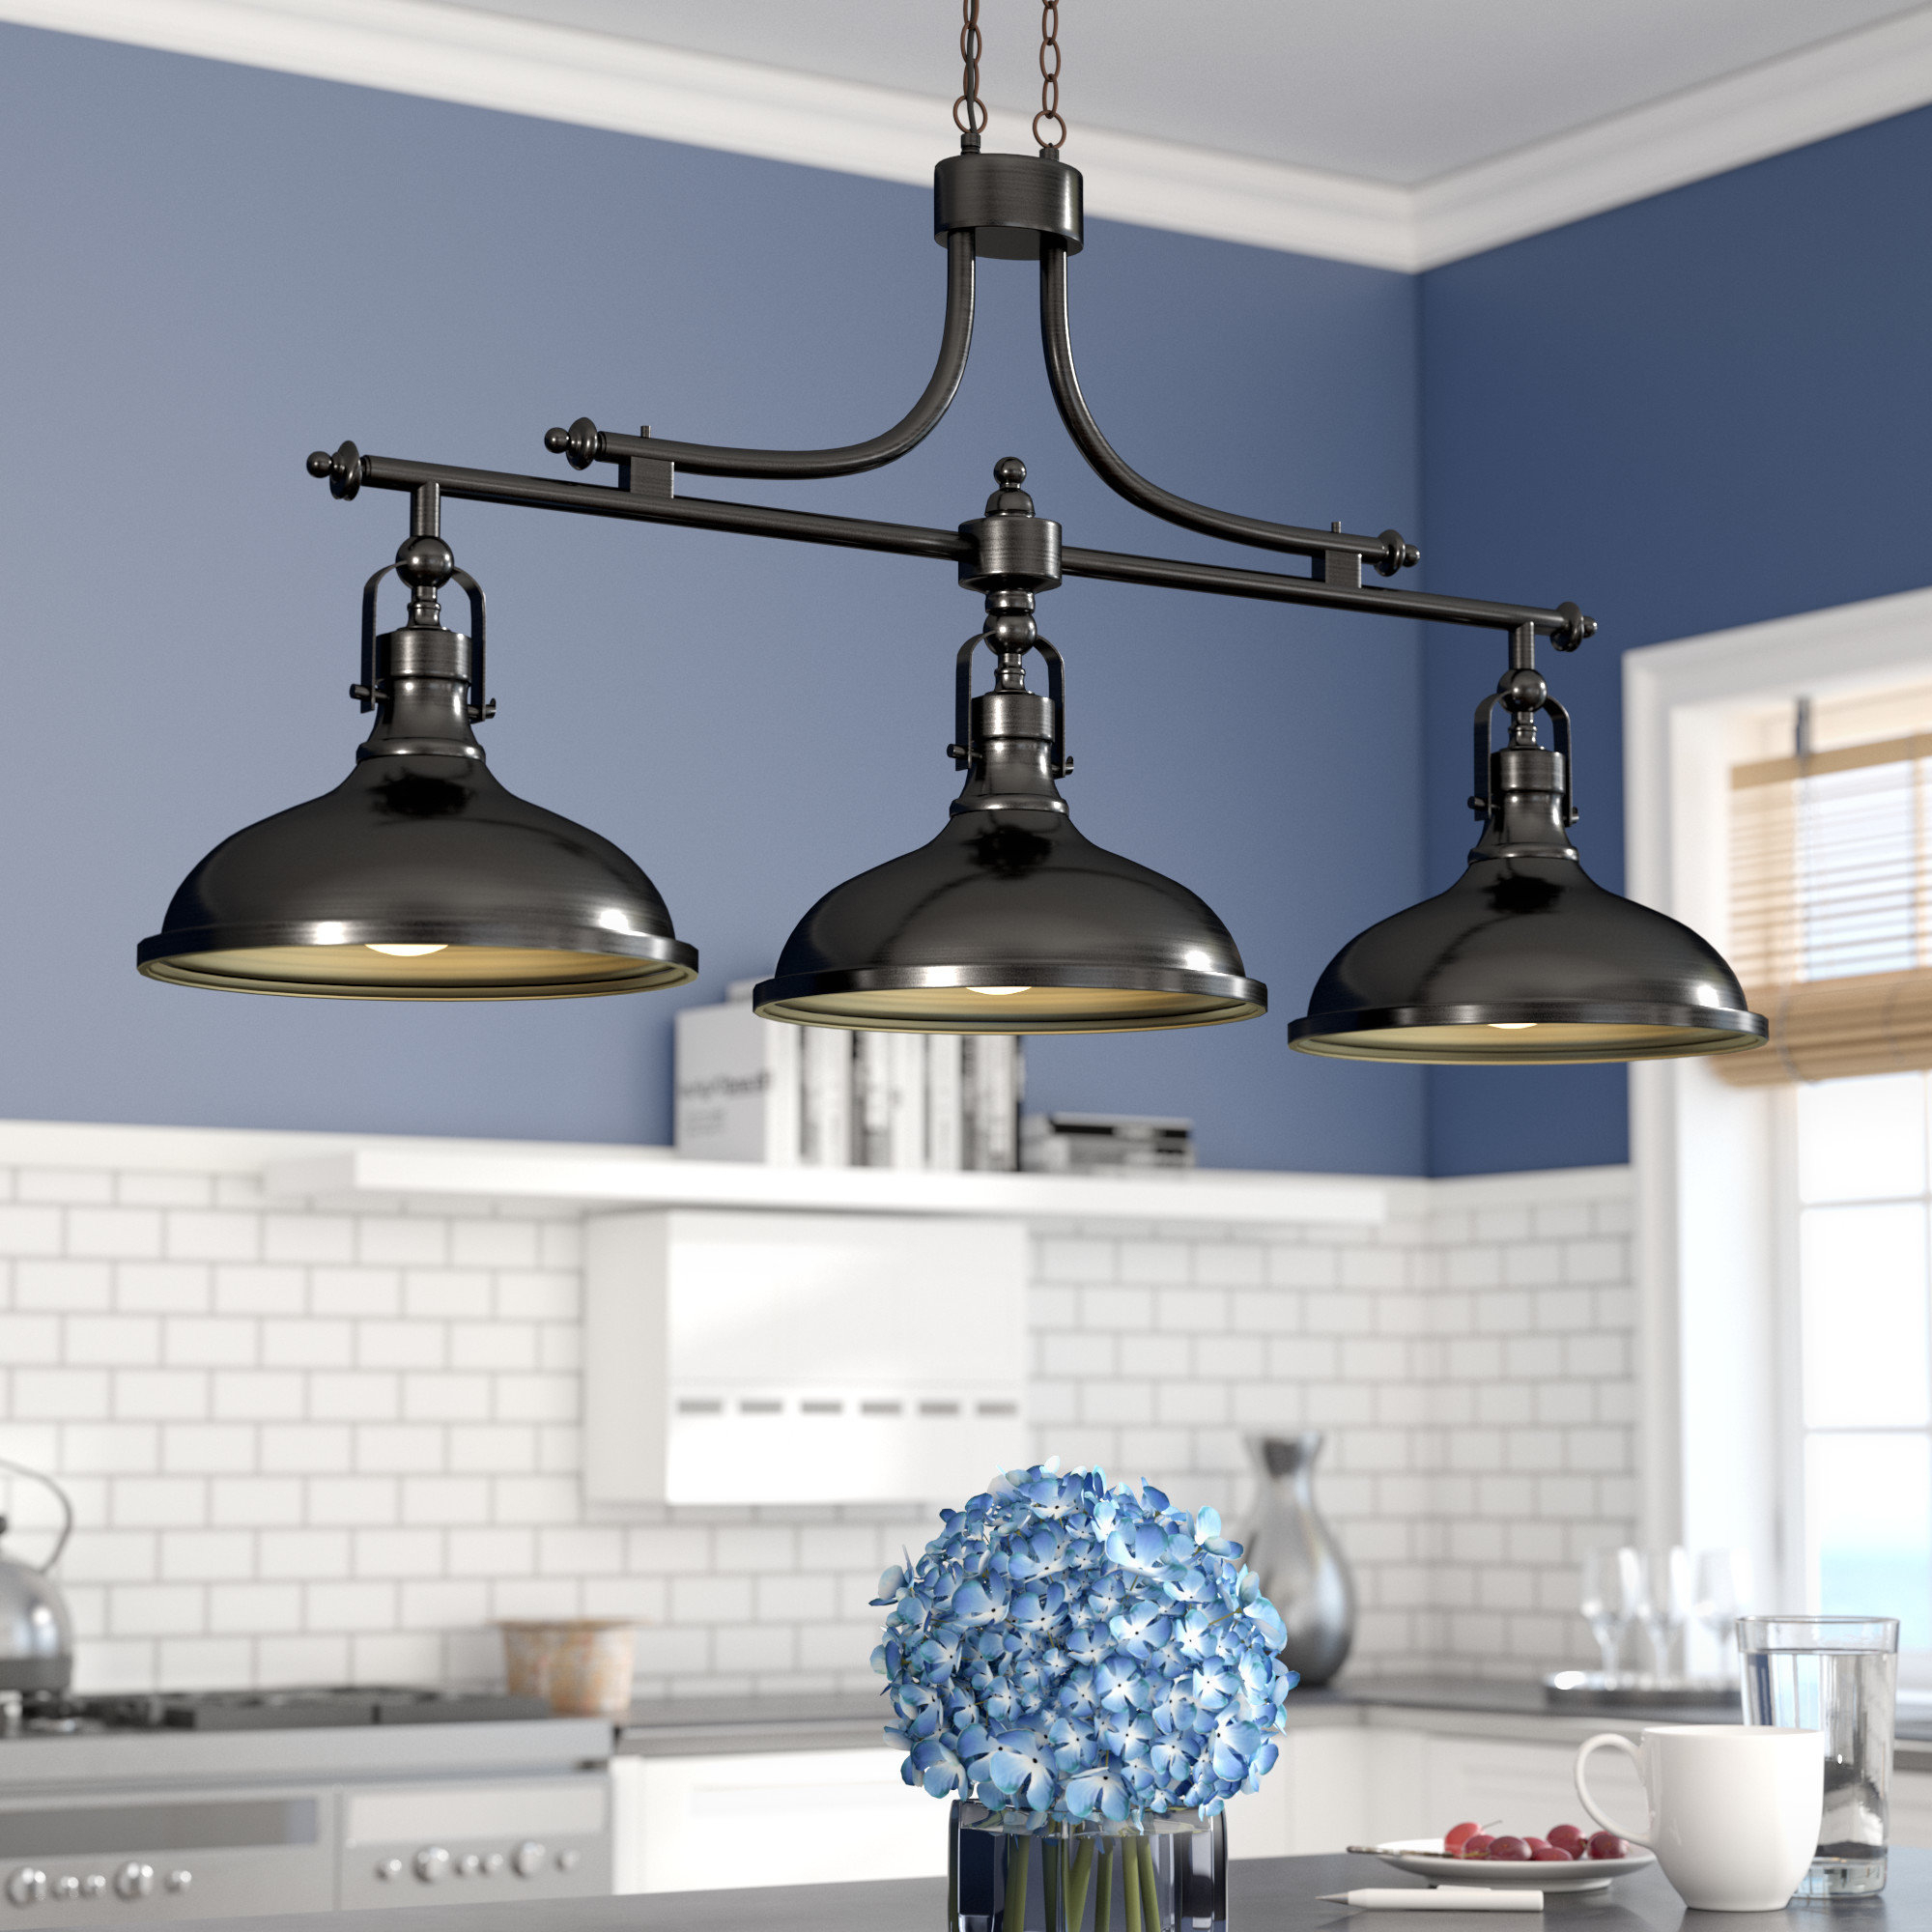 2020 Martinique 3 Light Kitchen Island Dome Pendant In Fredela 3 Light Kitchen Island Pendants (View 3 of 20)